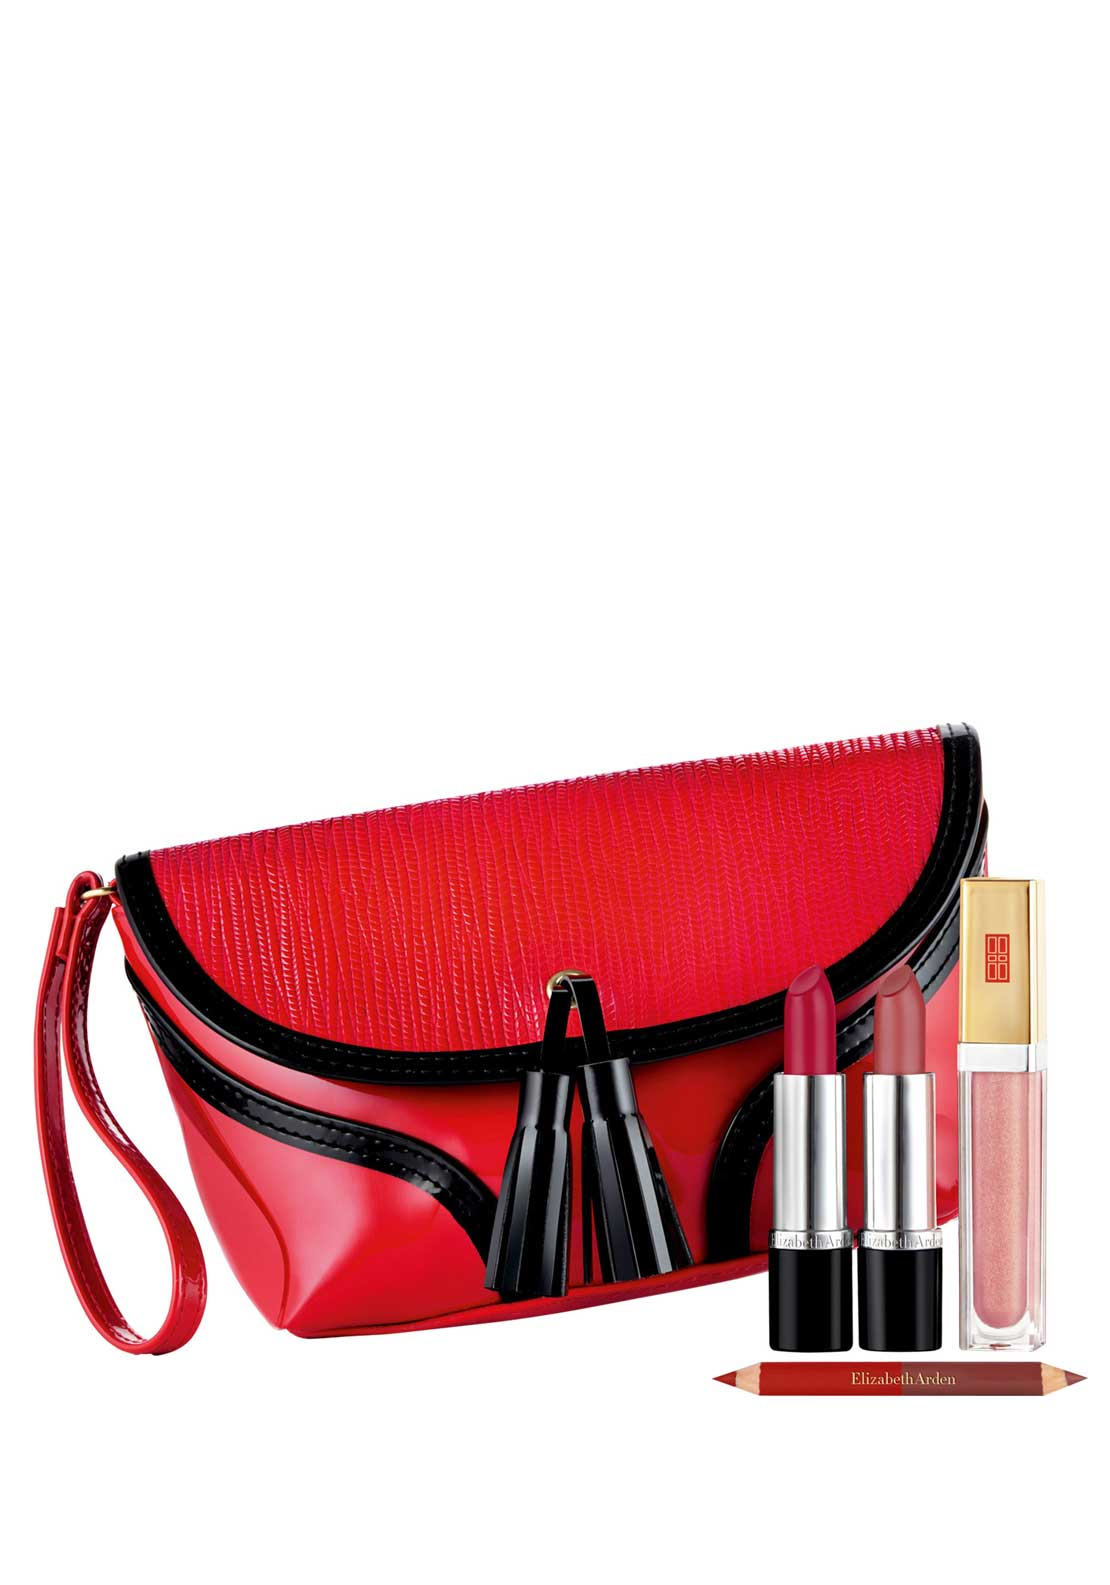 Elizabeth Arden Beautiful Colour Lip Kit Gift Set